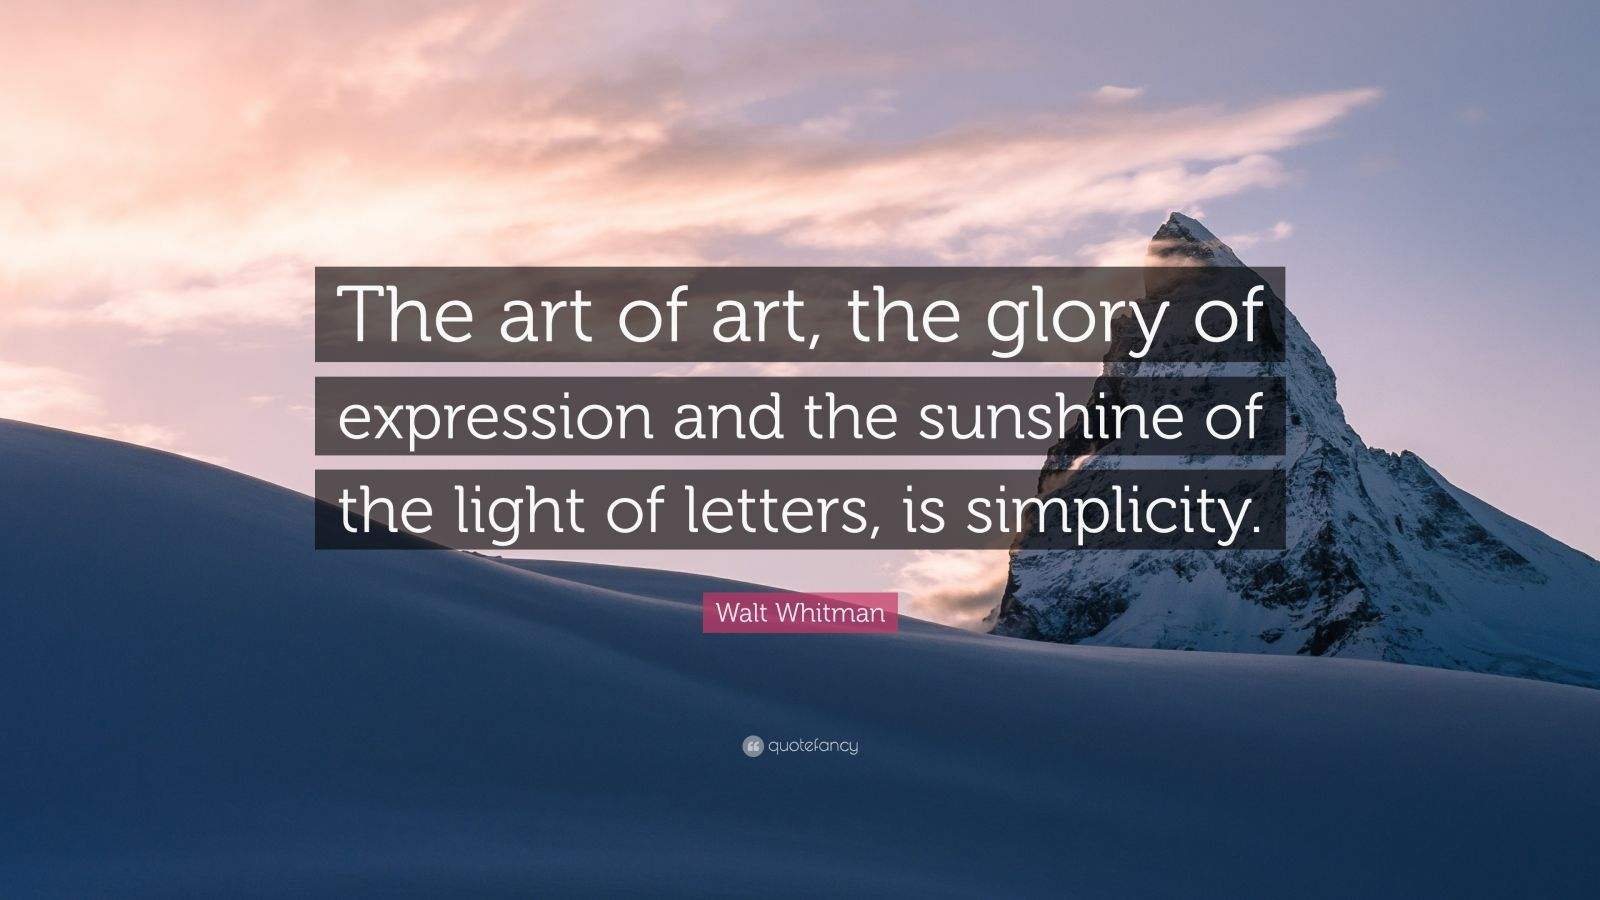 """Walt Whitman Quote: """"The art of art, the glory of expression and the sunshine of the light of letters, is simplicity."""""""